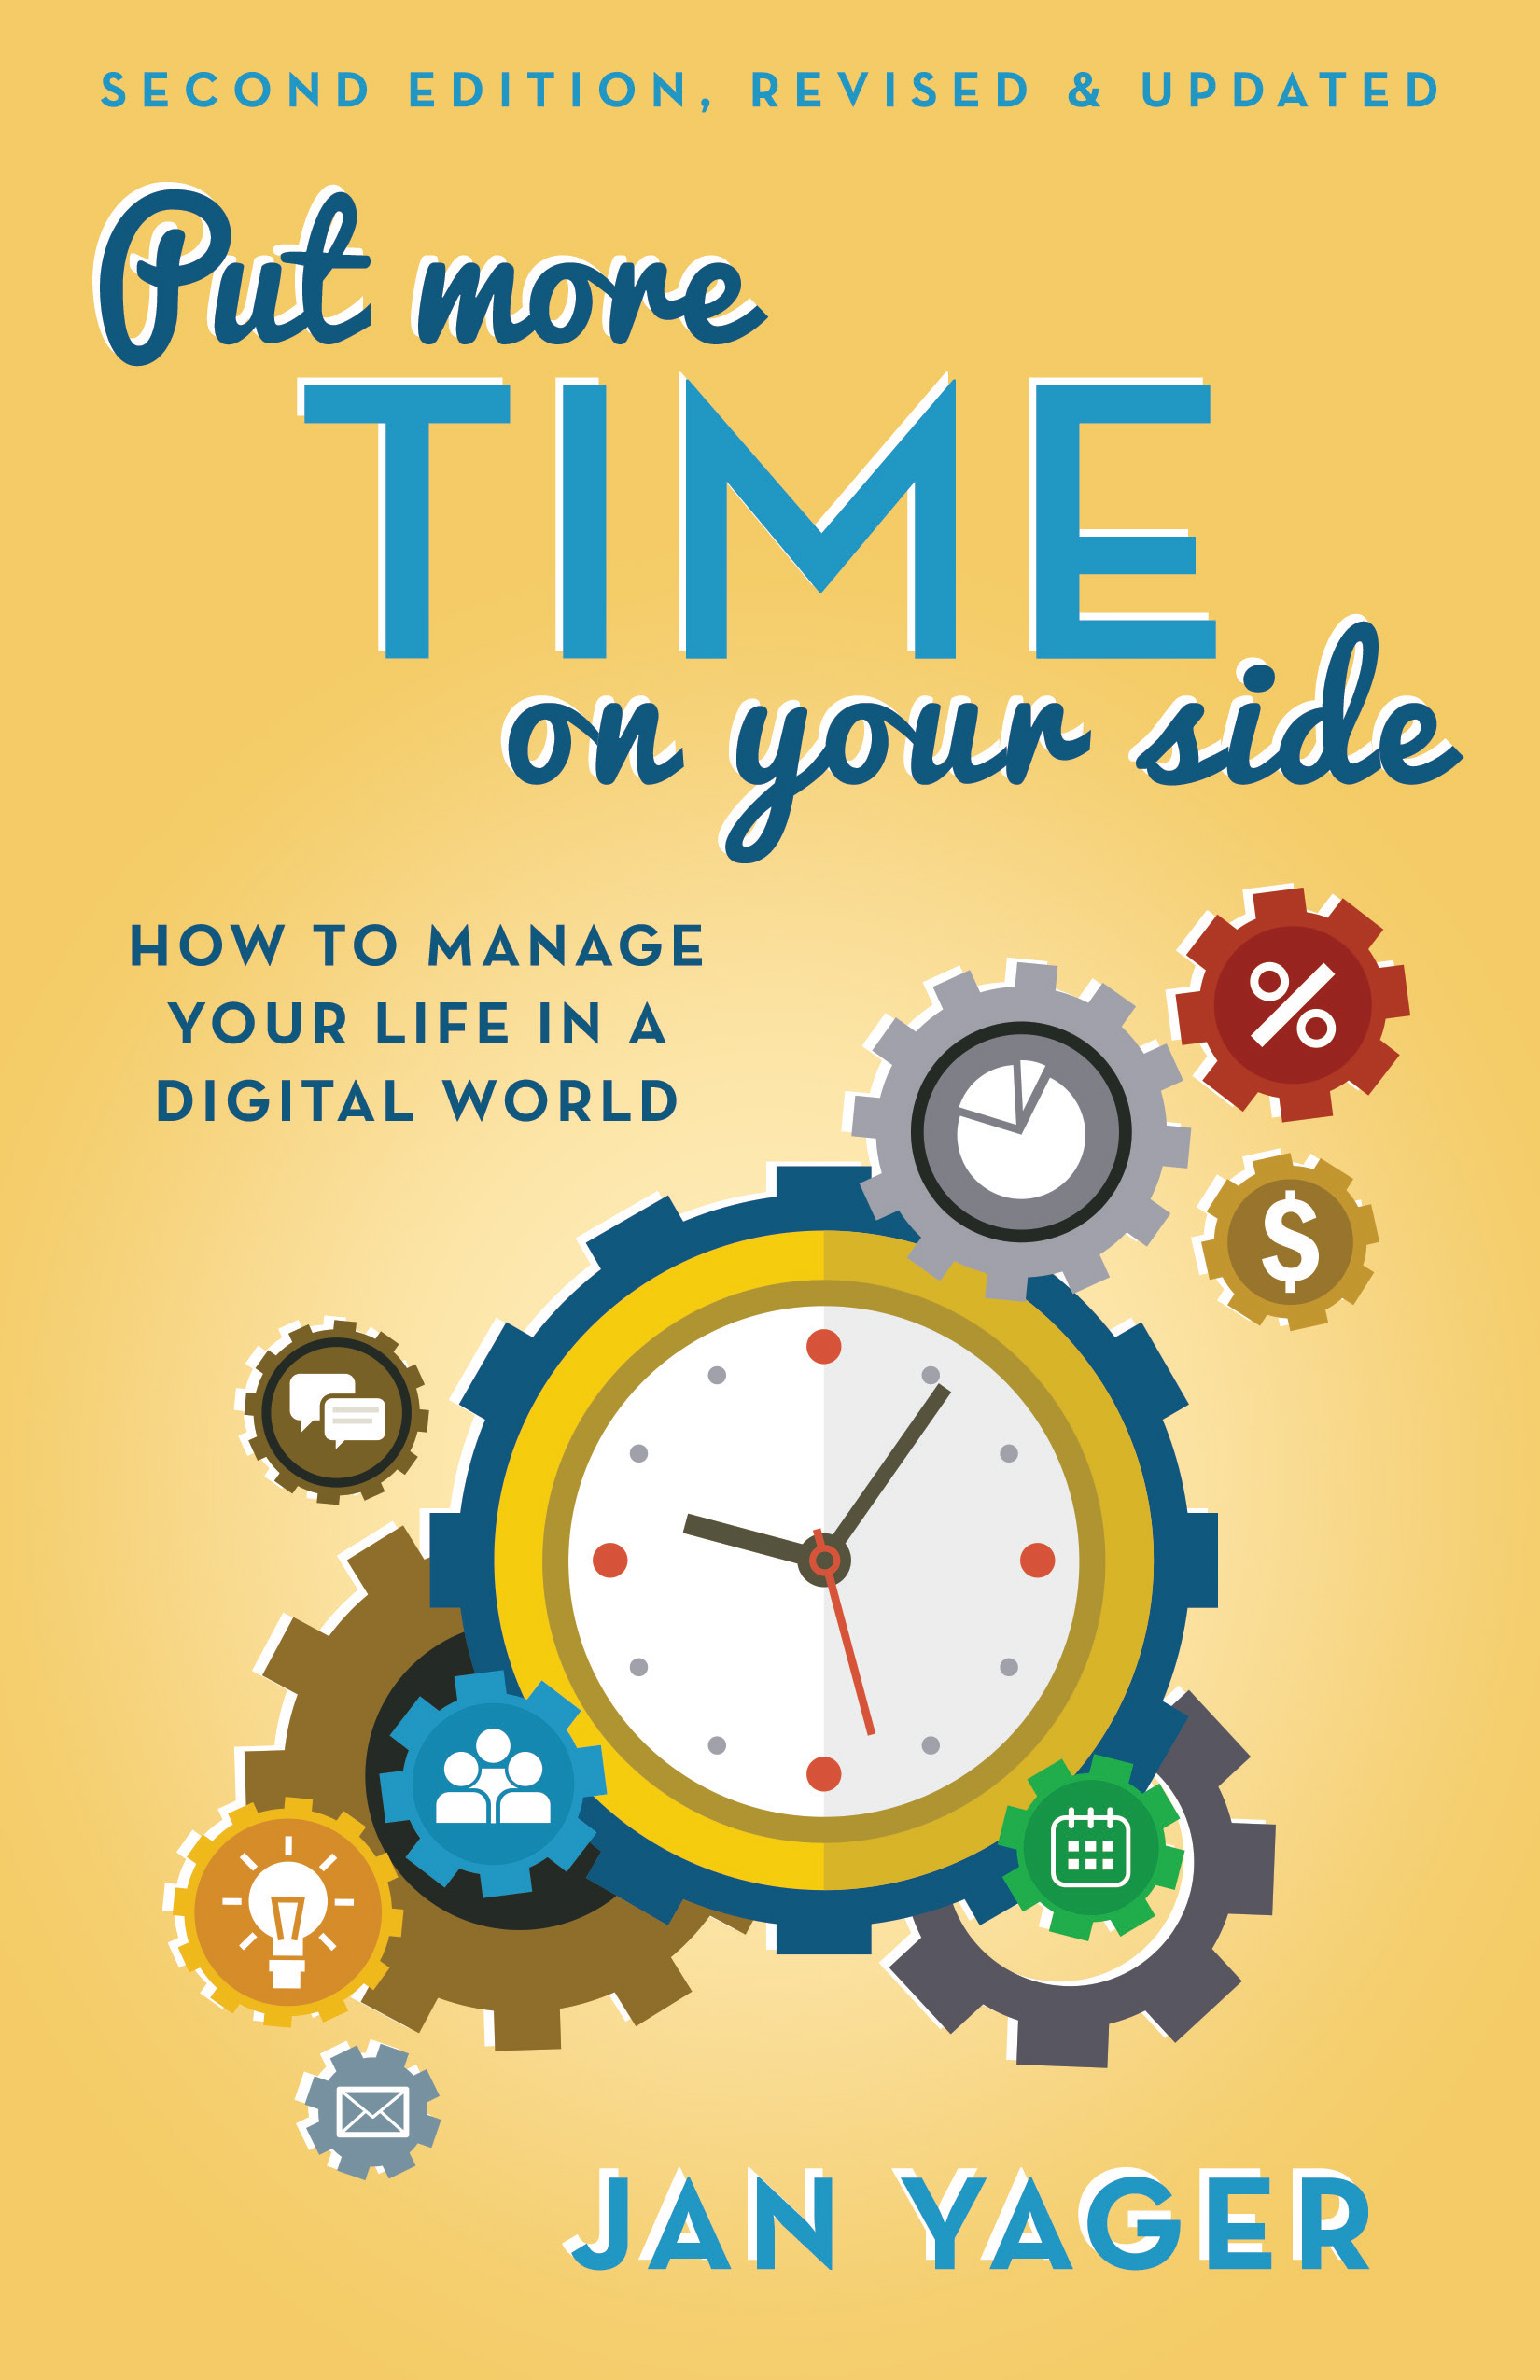 Put More Time on Your Side - Jan Yager